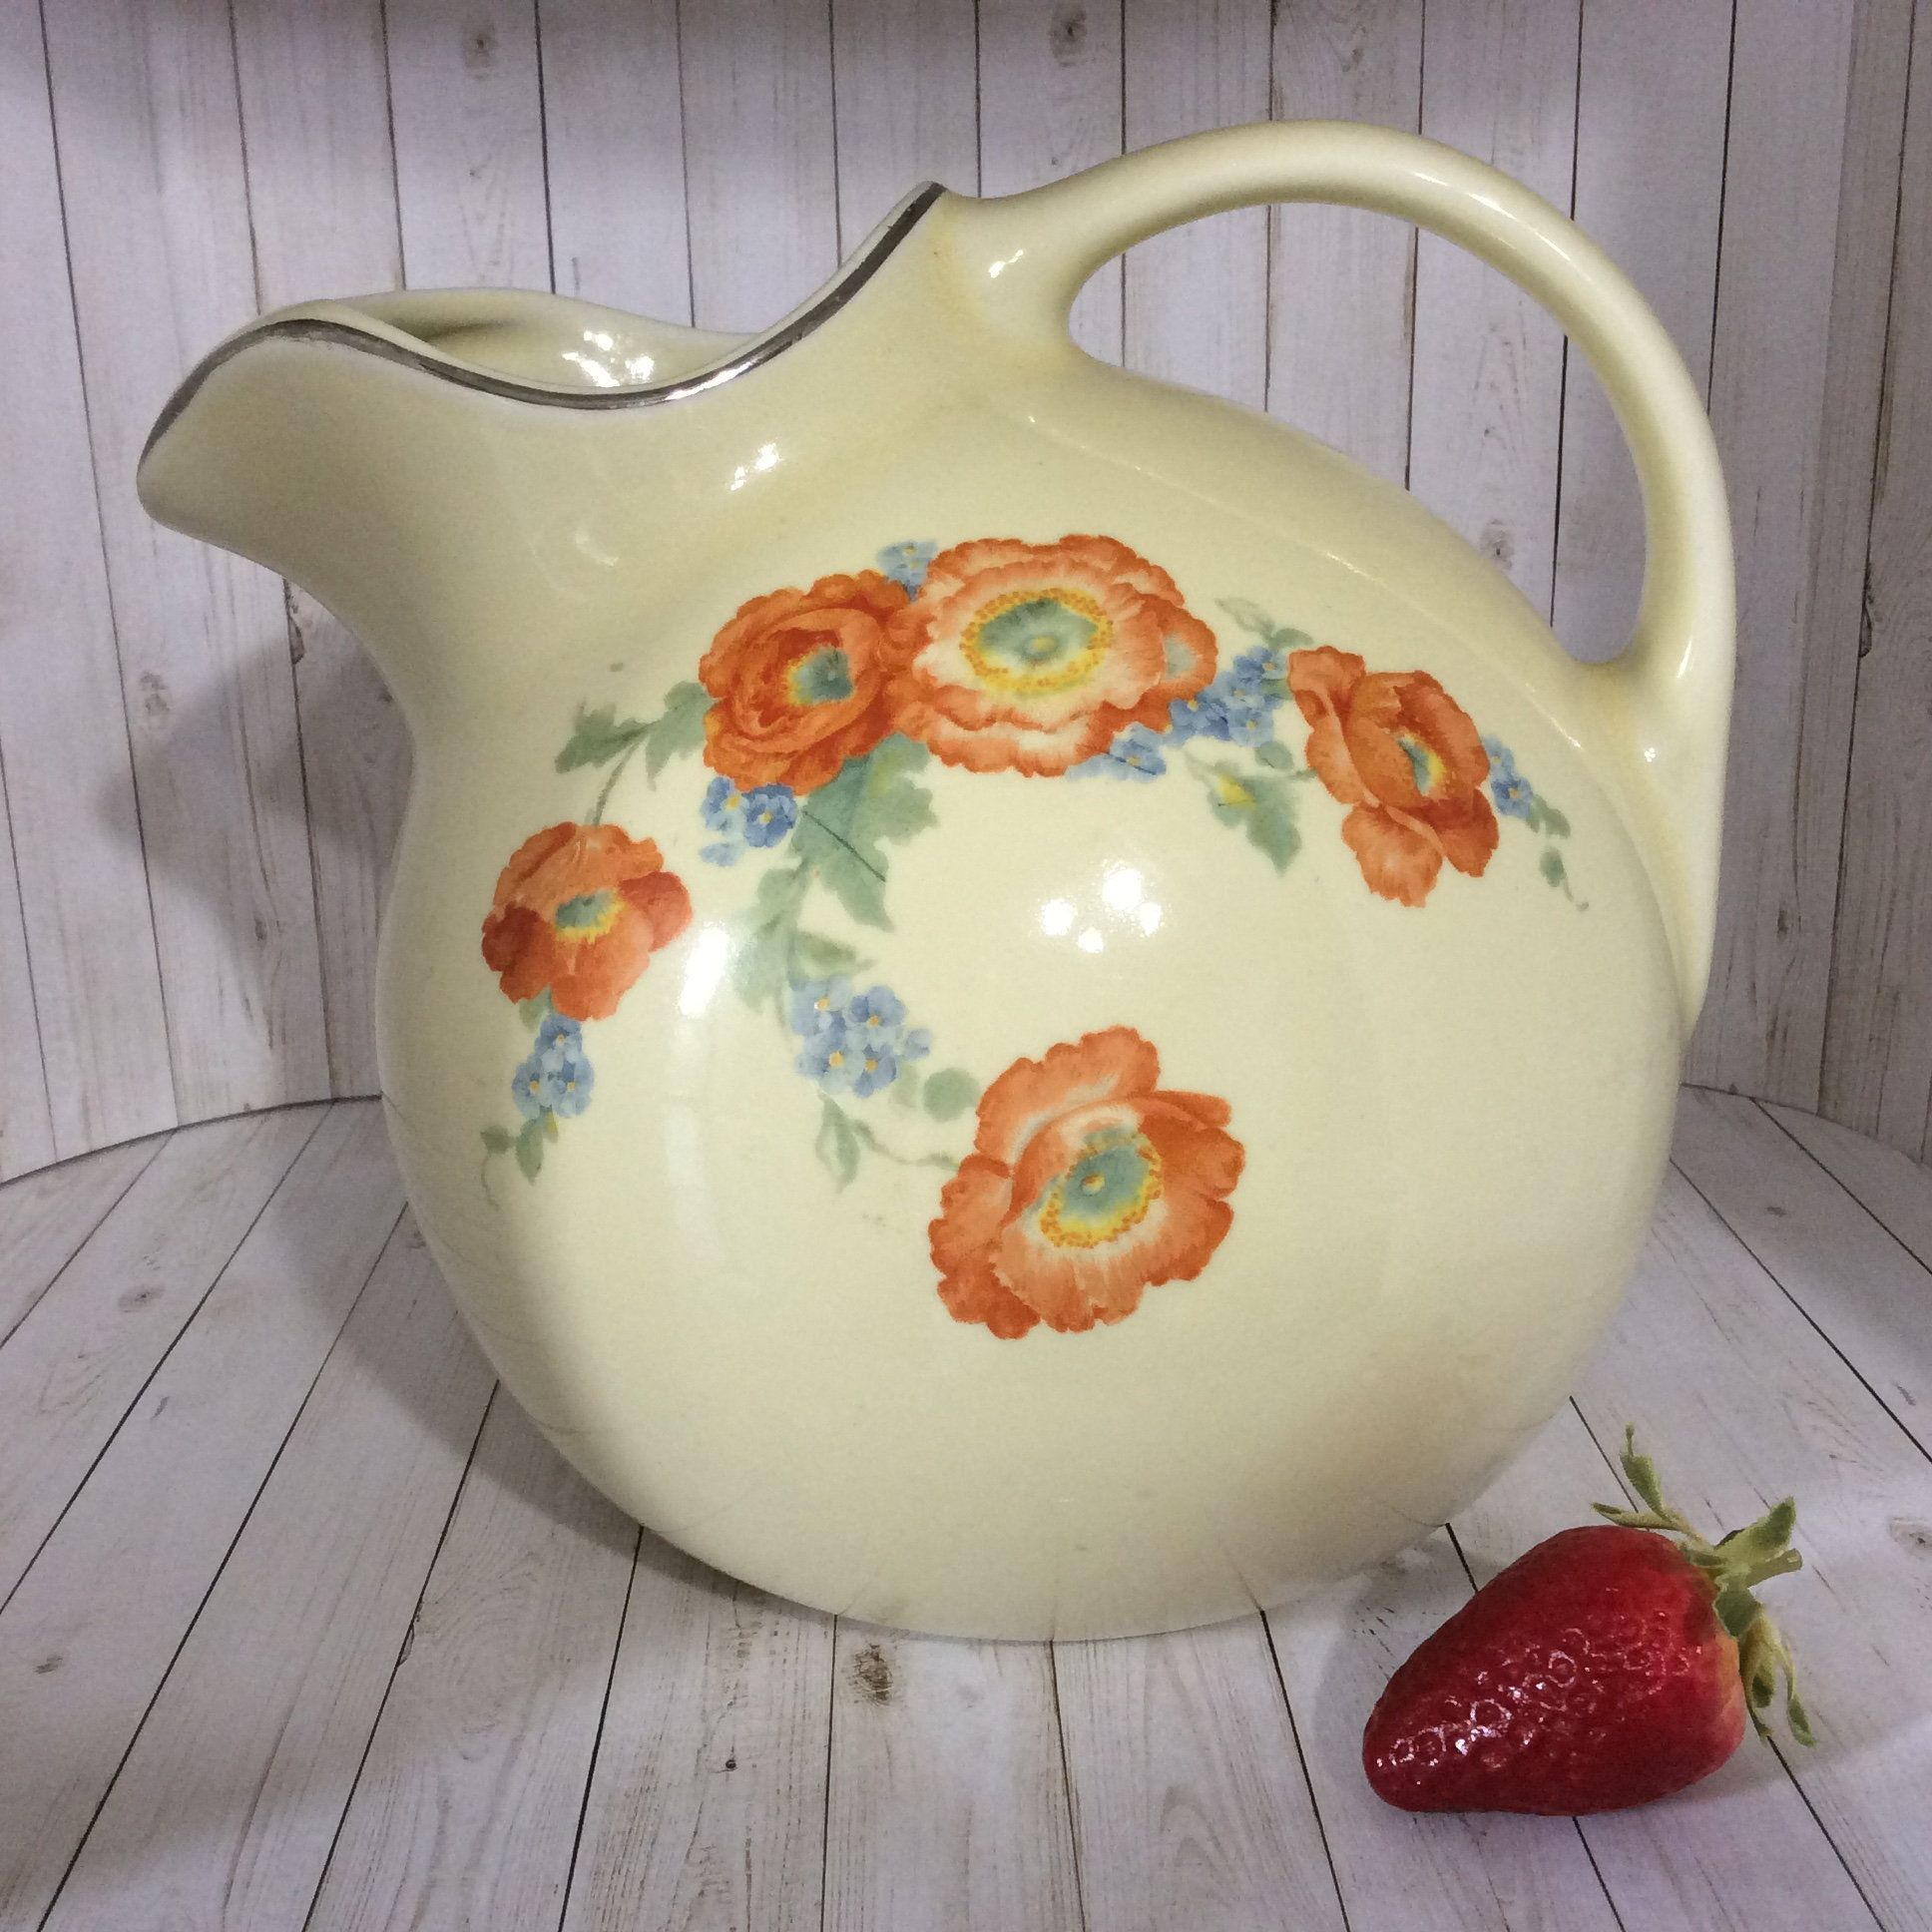 Vintage Hall S Ball Tilt Pitcher With Ice Lip 633 2qt Orange Poppy By Hall S Superior Quality Kitchenware Orange Blue Flowers 1933 1953 Pitcher Hall Pottery Vintage Pottery